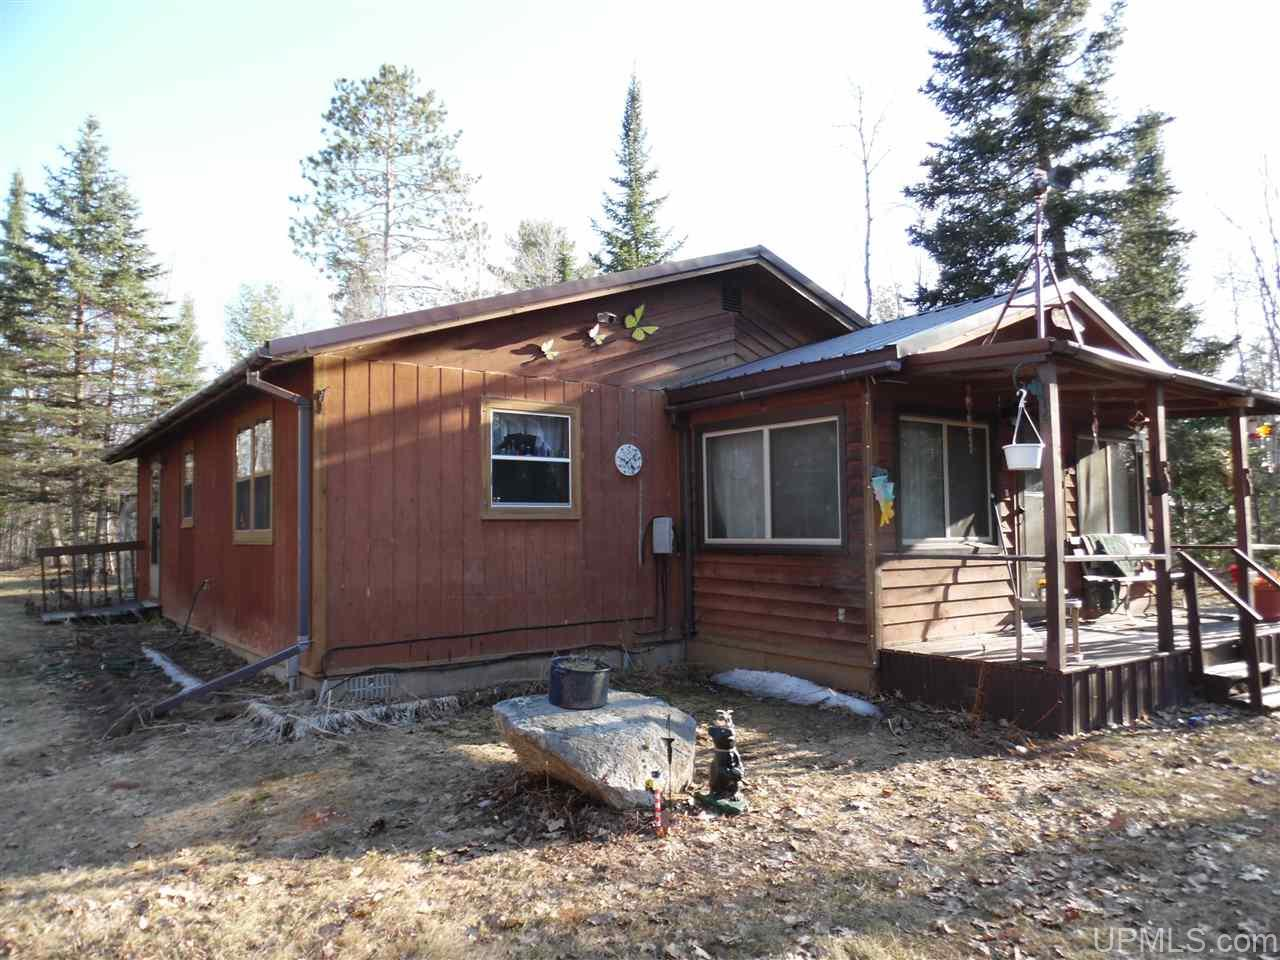 W7469 Thompson West Rd, Pembine, WI 54156